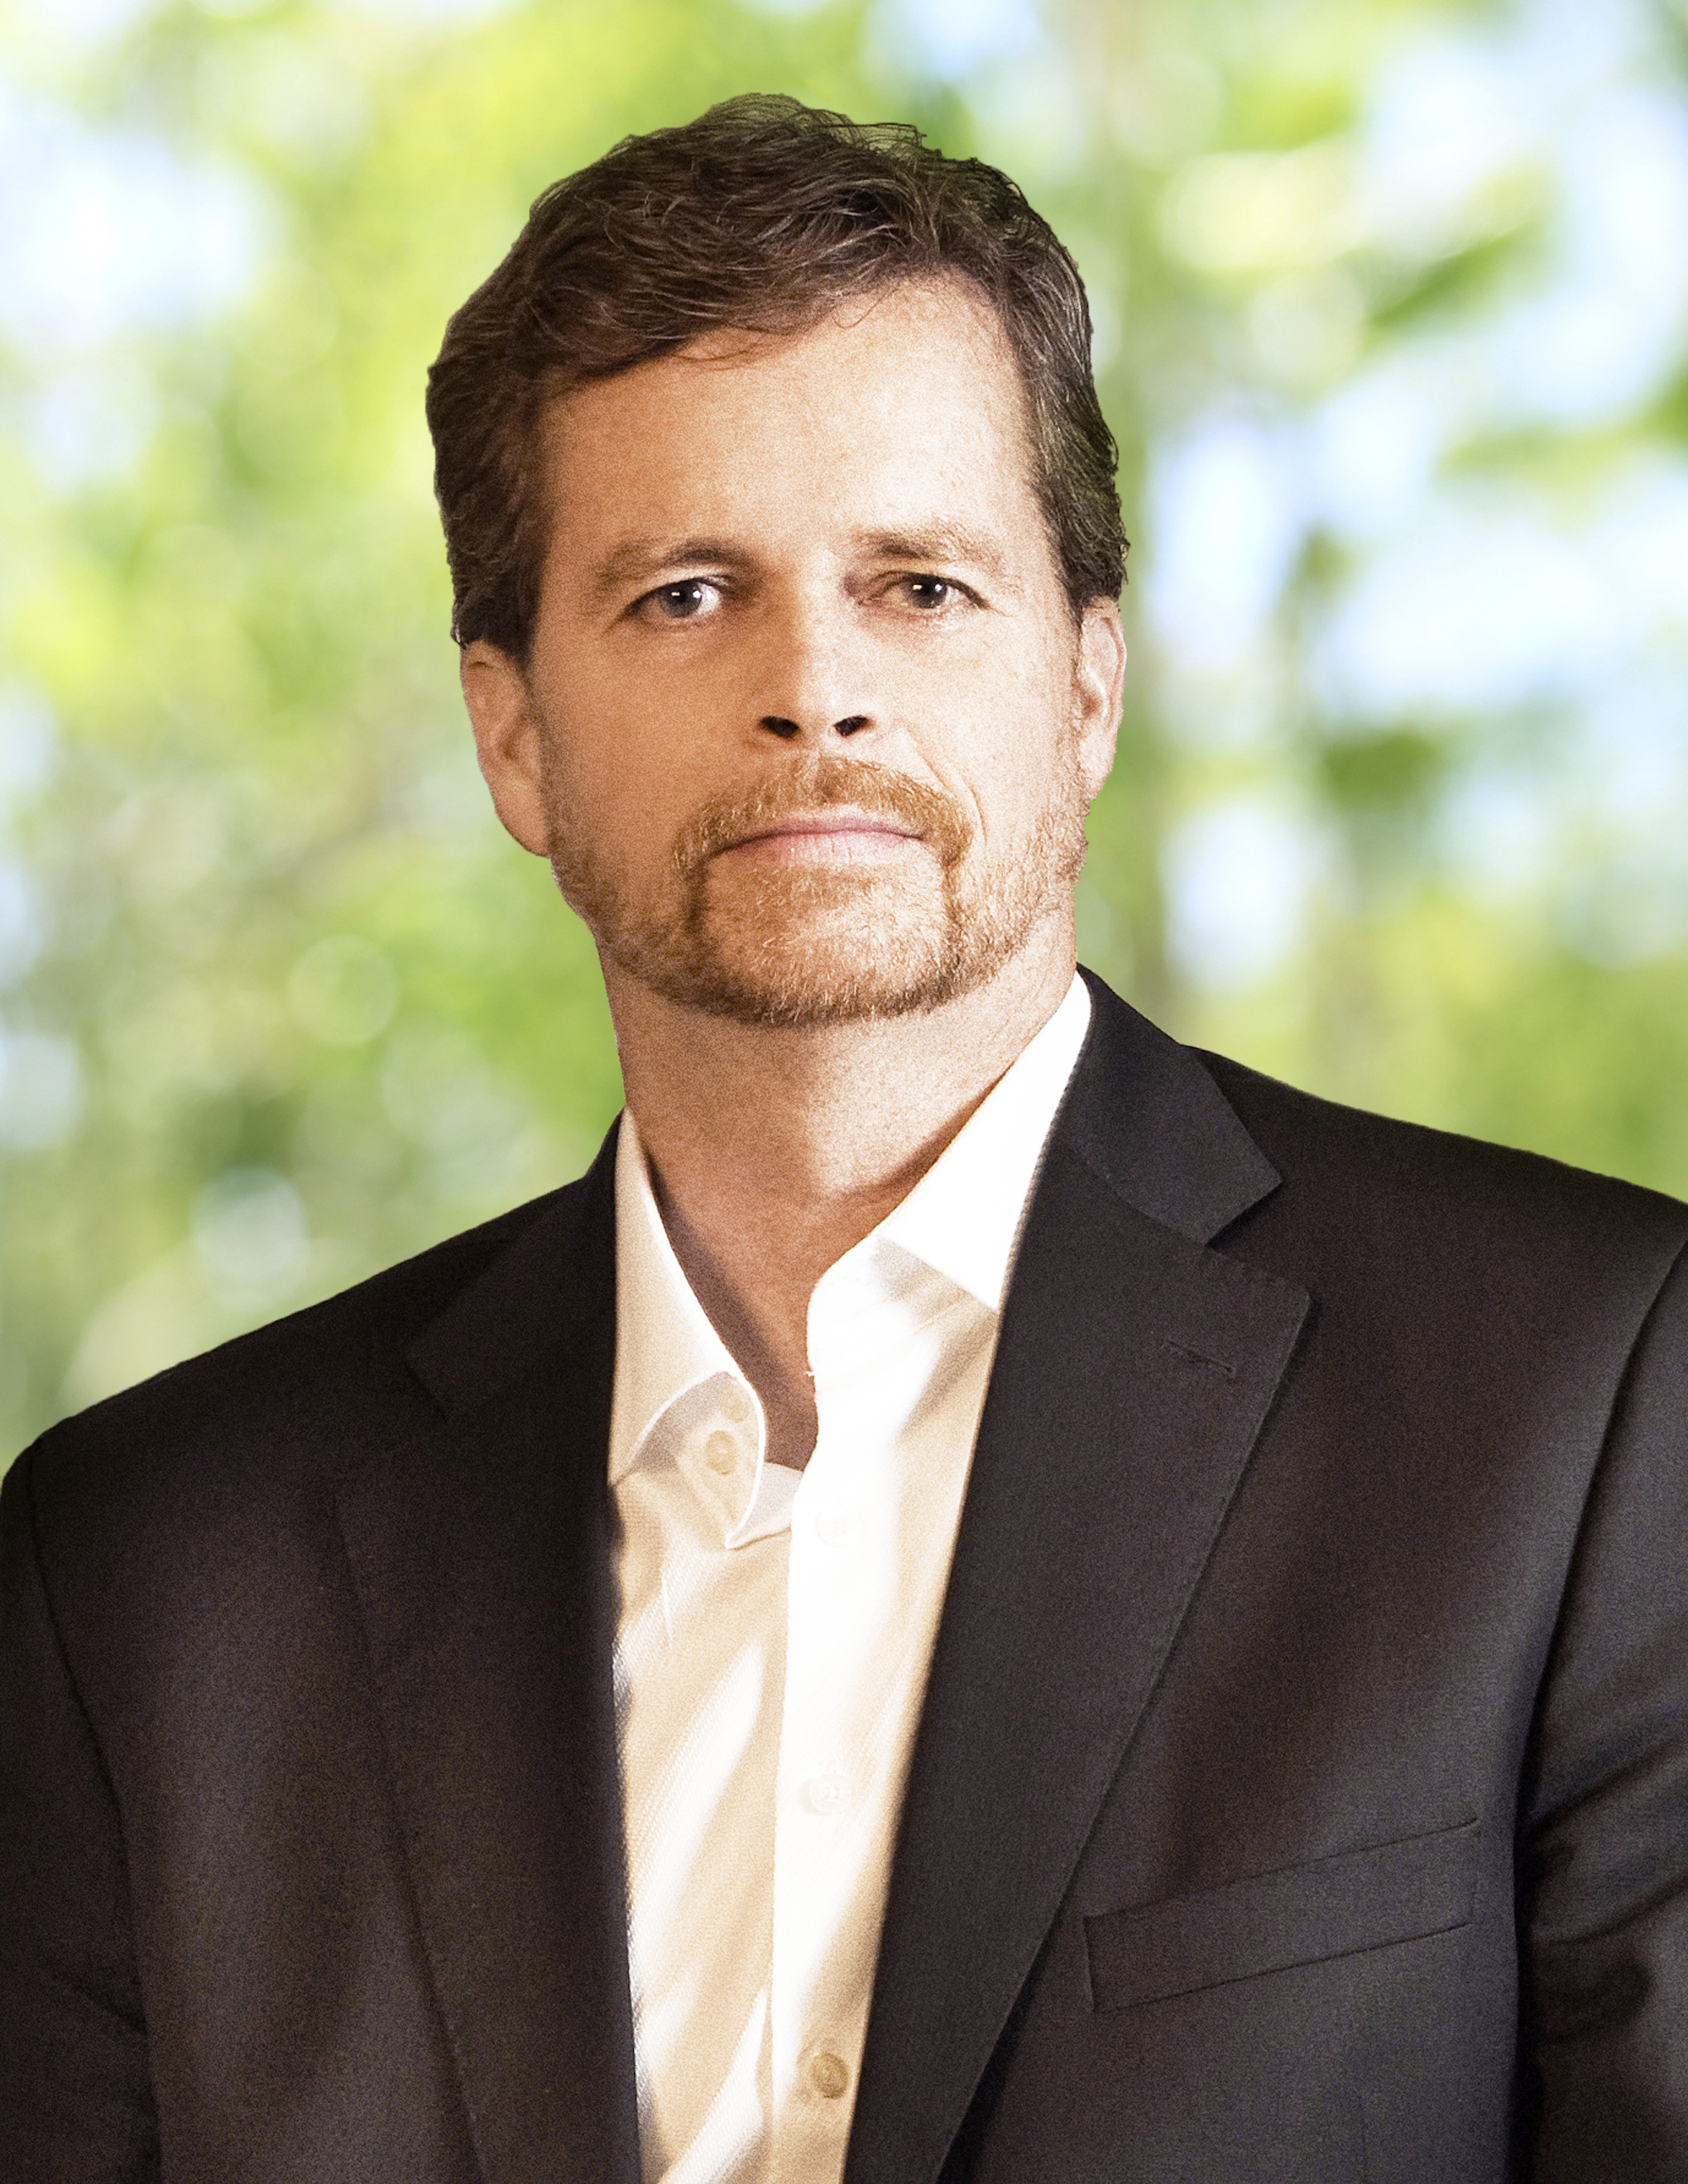 mark parkers leadership essay A designer by heart, ceo mark parker has helped nike post by encouraging continuous product innovation and volunteering his own successful design ideas.